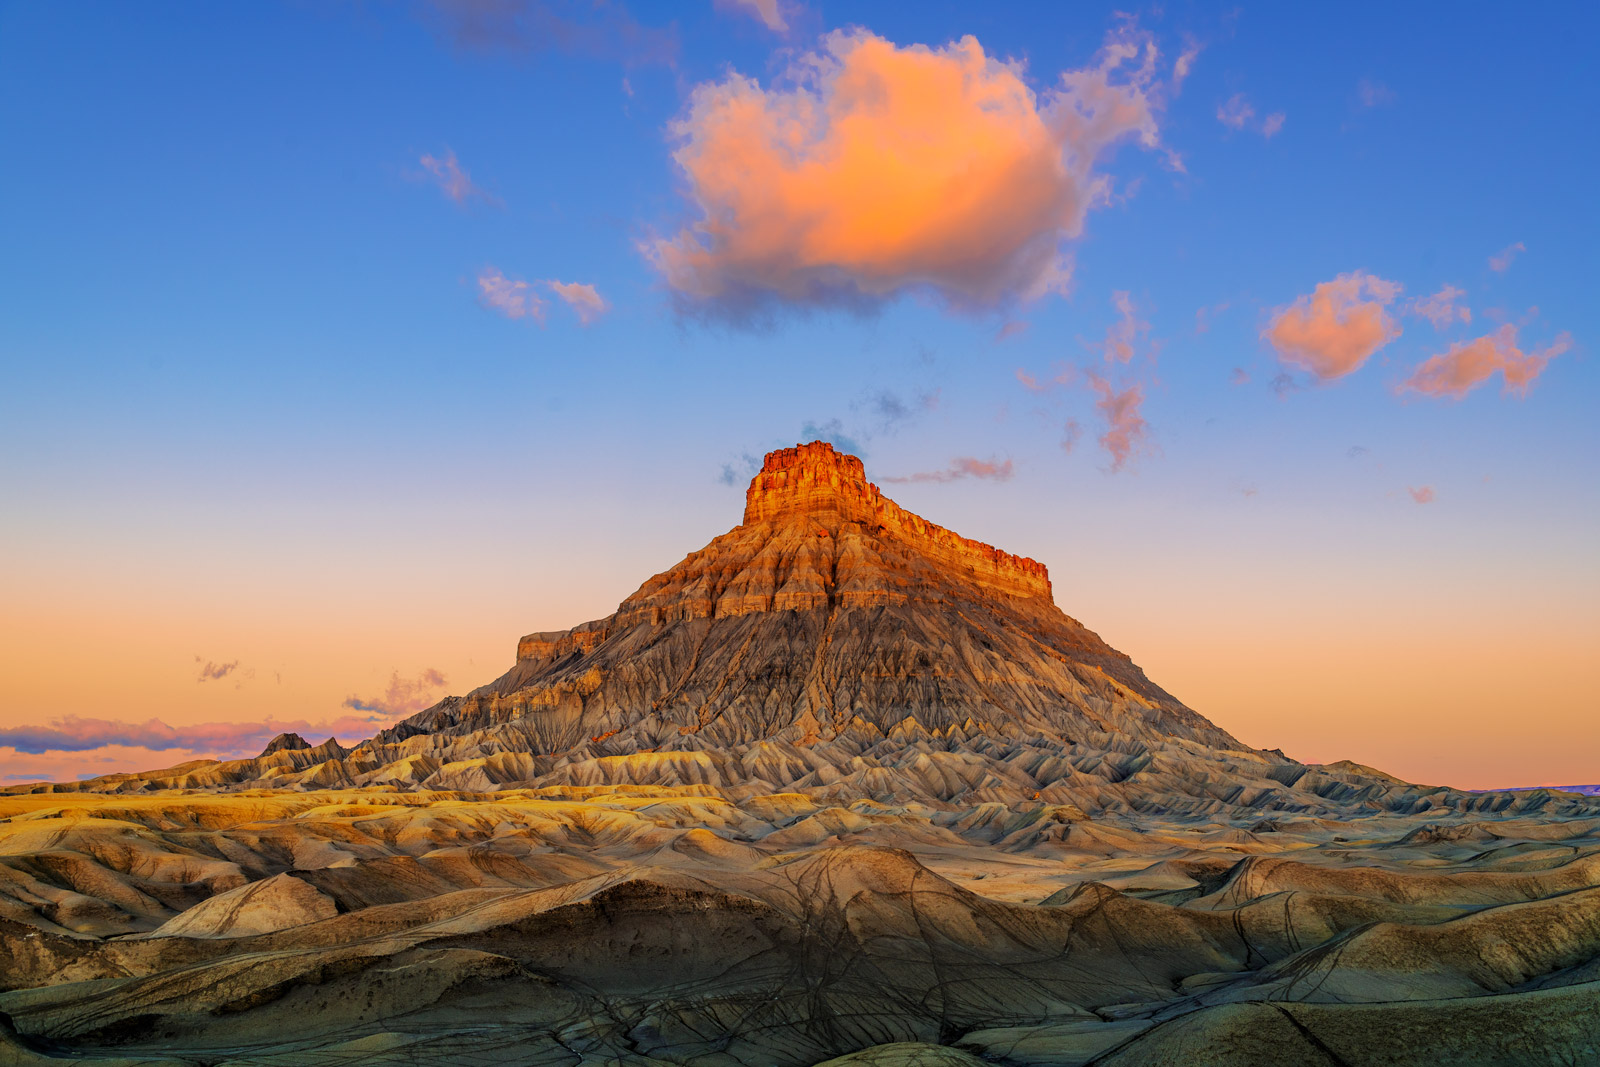 A Limited Edition, Fine Art photograph of Factory Butte receiving fresh sunrise light in a remote canyon in the Desert Southwest...